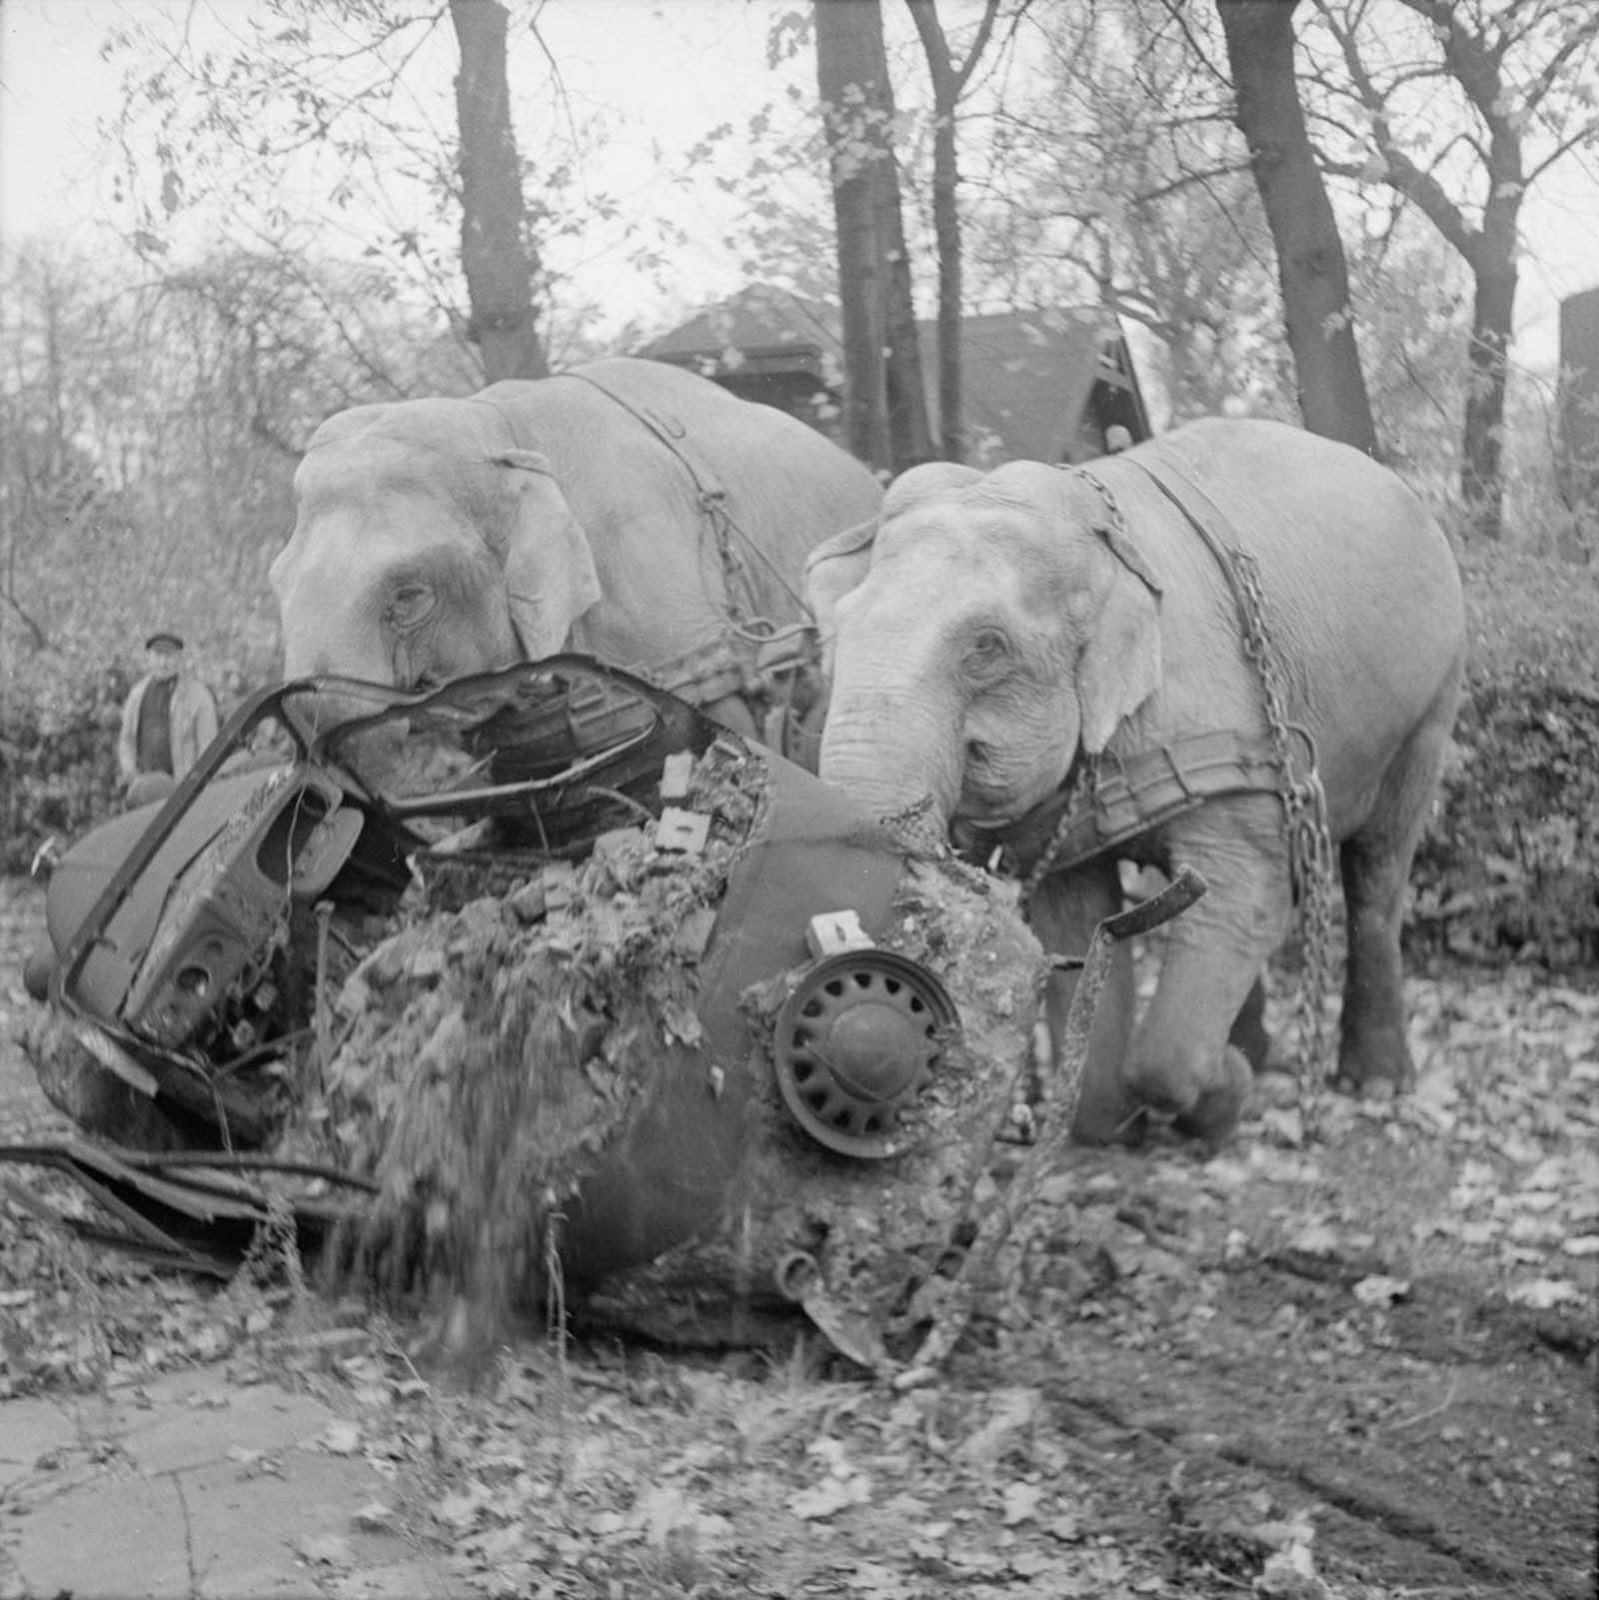 Circus elephants Kiri and Many clear a wrecked car from a street in Hamburg. Both elephants were used by the civil authorities to clear wreckage during and after the war.